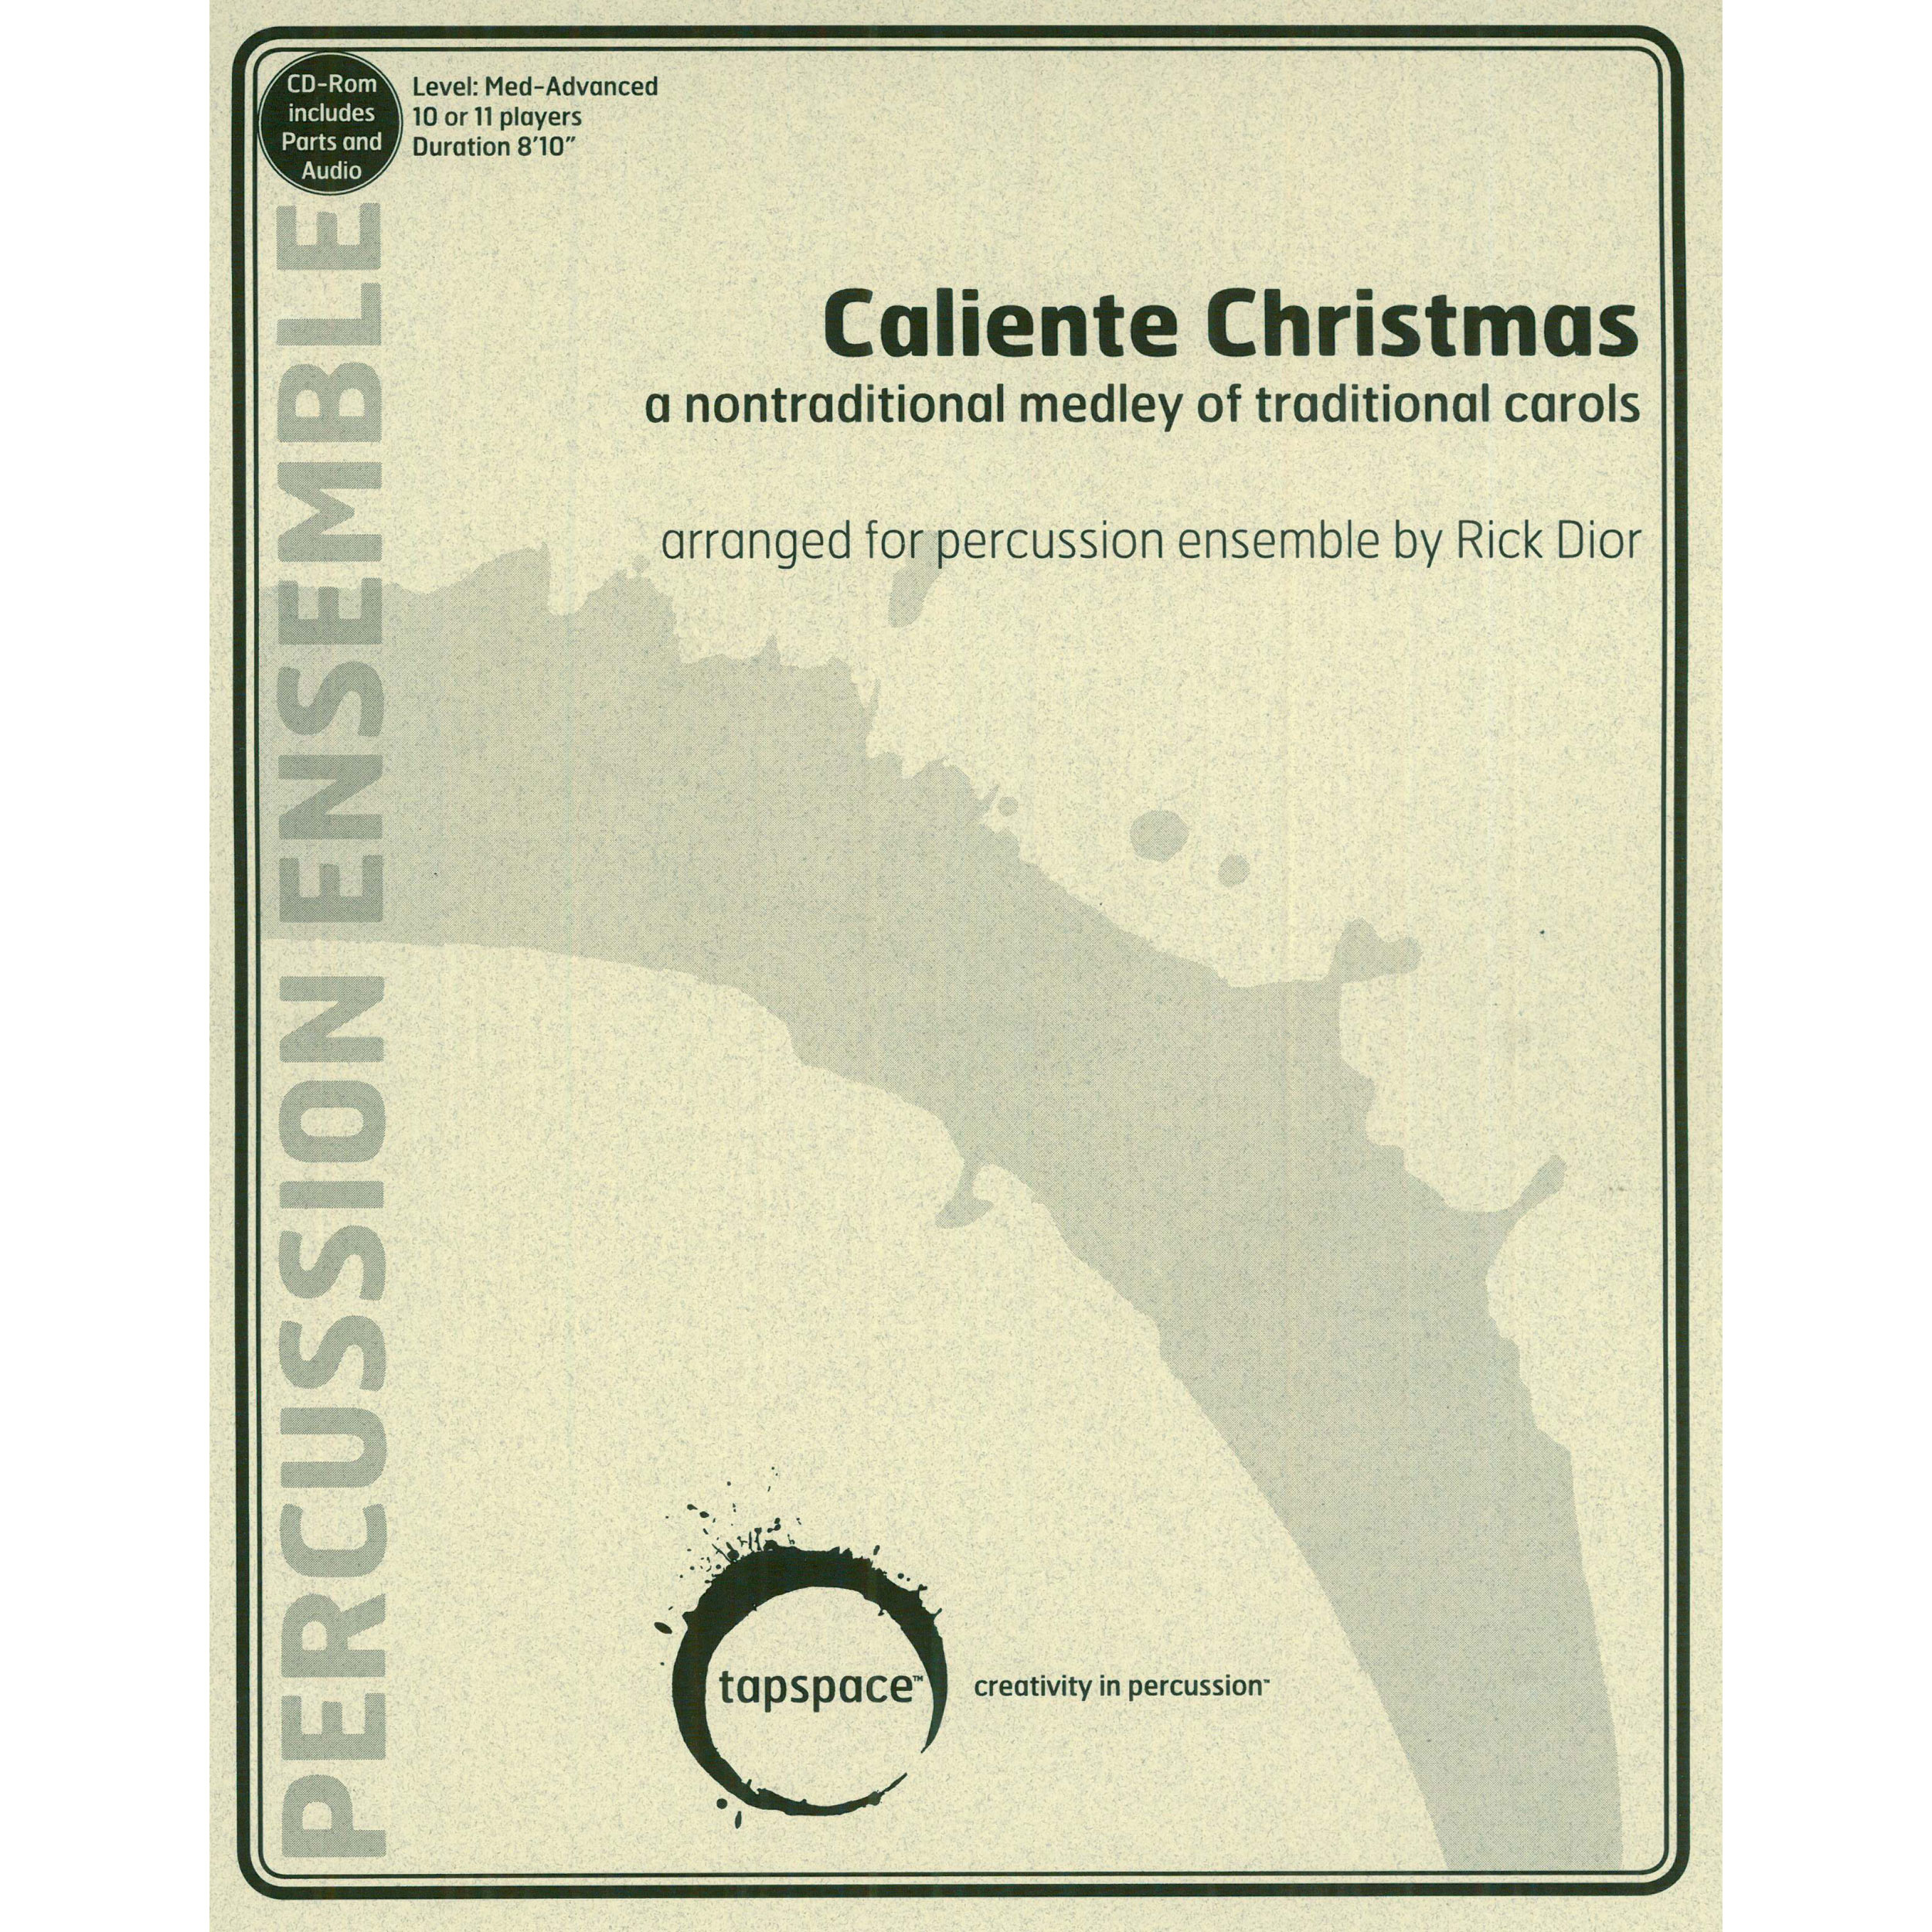 Caliente Christmas by Rick Dior